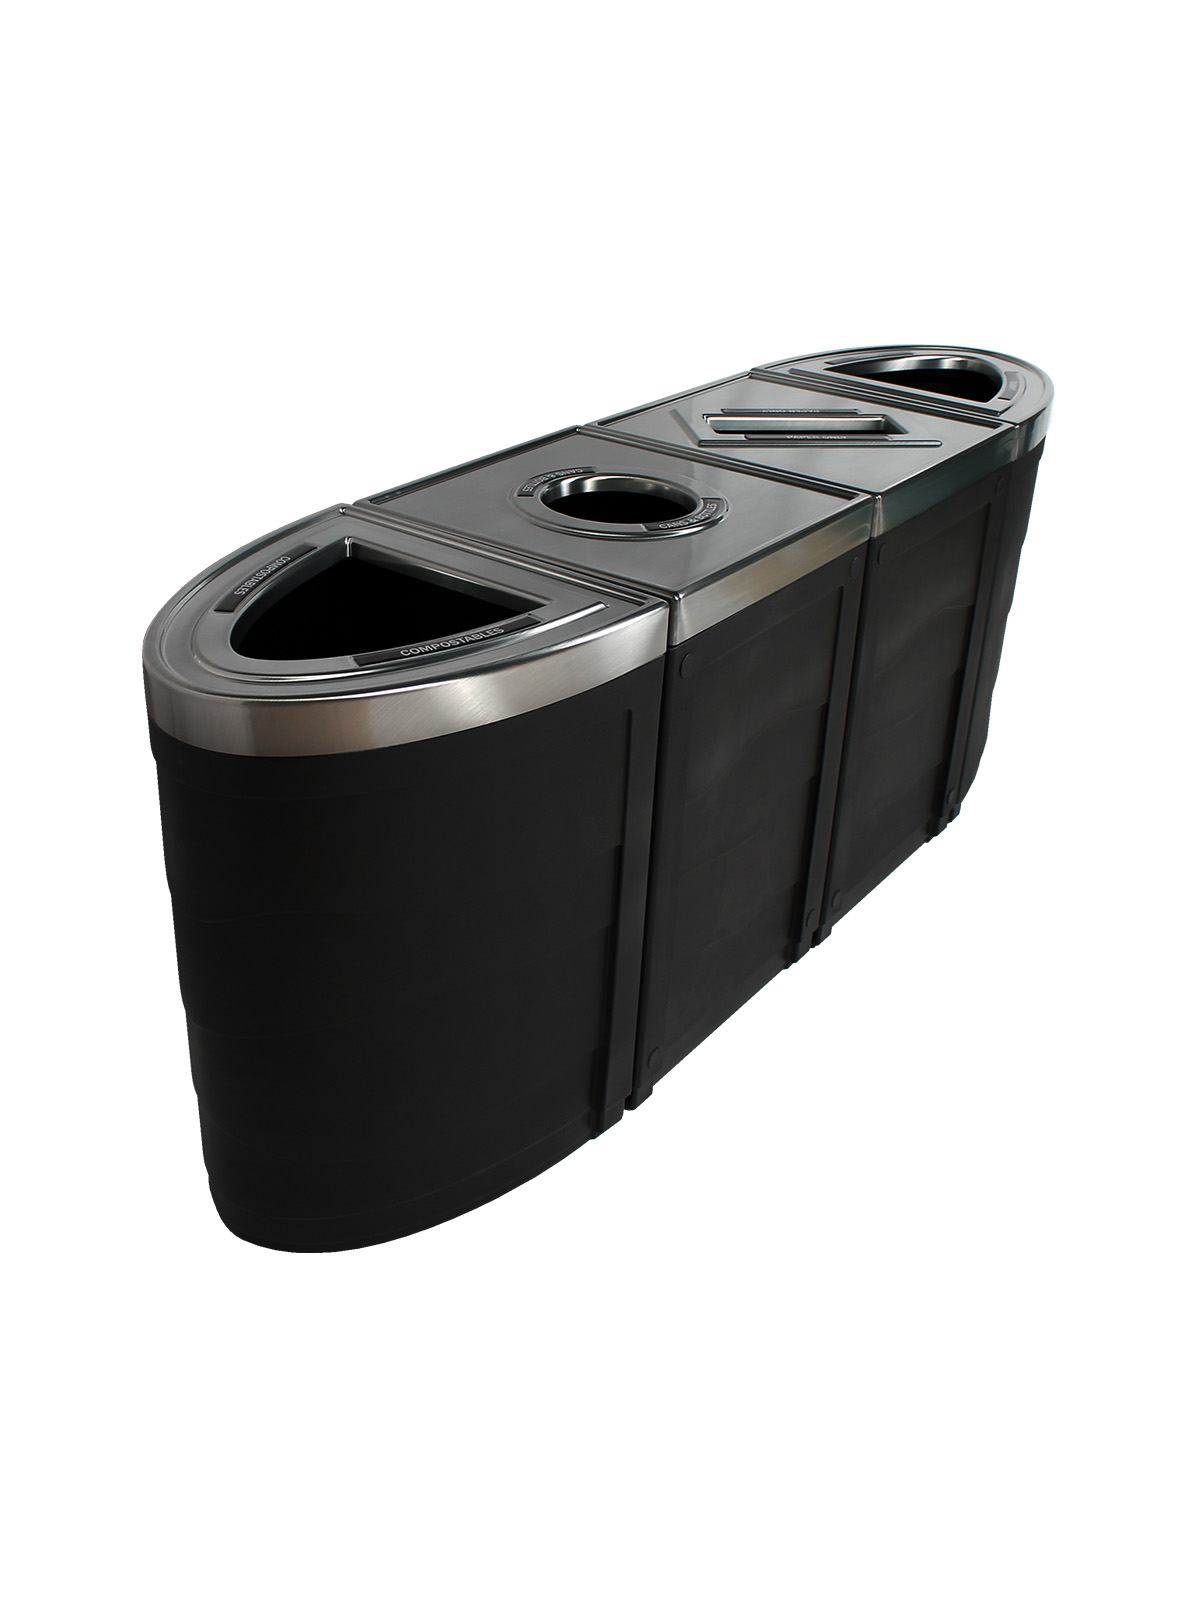 EVOLVE - Quad - Compostables-Cans & Bottles-Paper-Landfill - Full-Circle-Slot-Full - Black